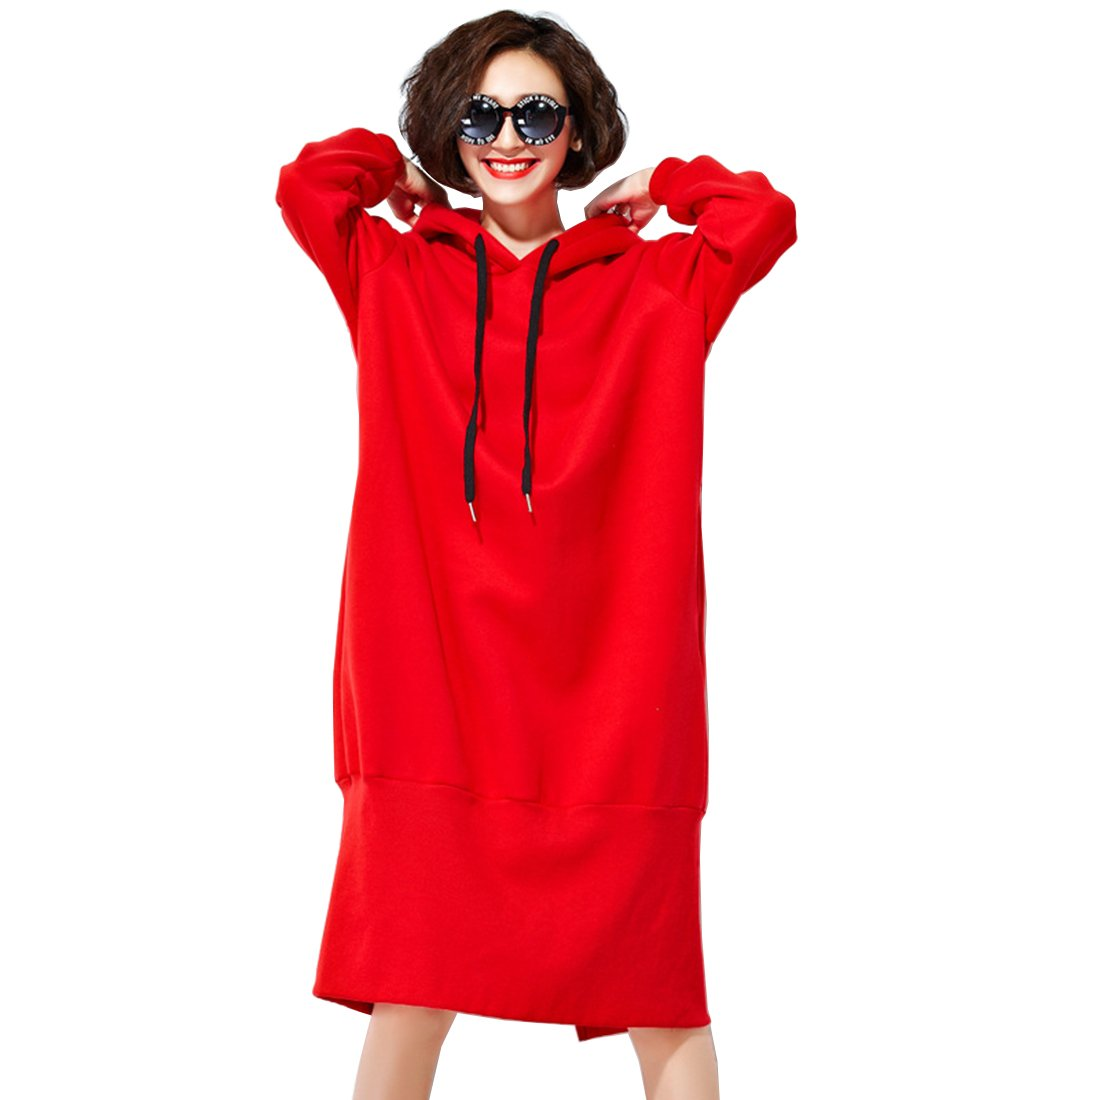 Bestor Fashion Women's Plus Size Loose fit Solid Color Long Sleeve Hoodies Dresses (One Size, Red)